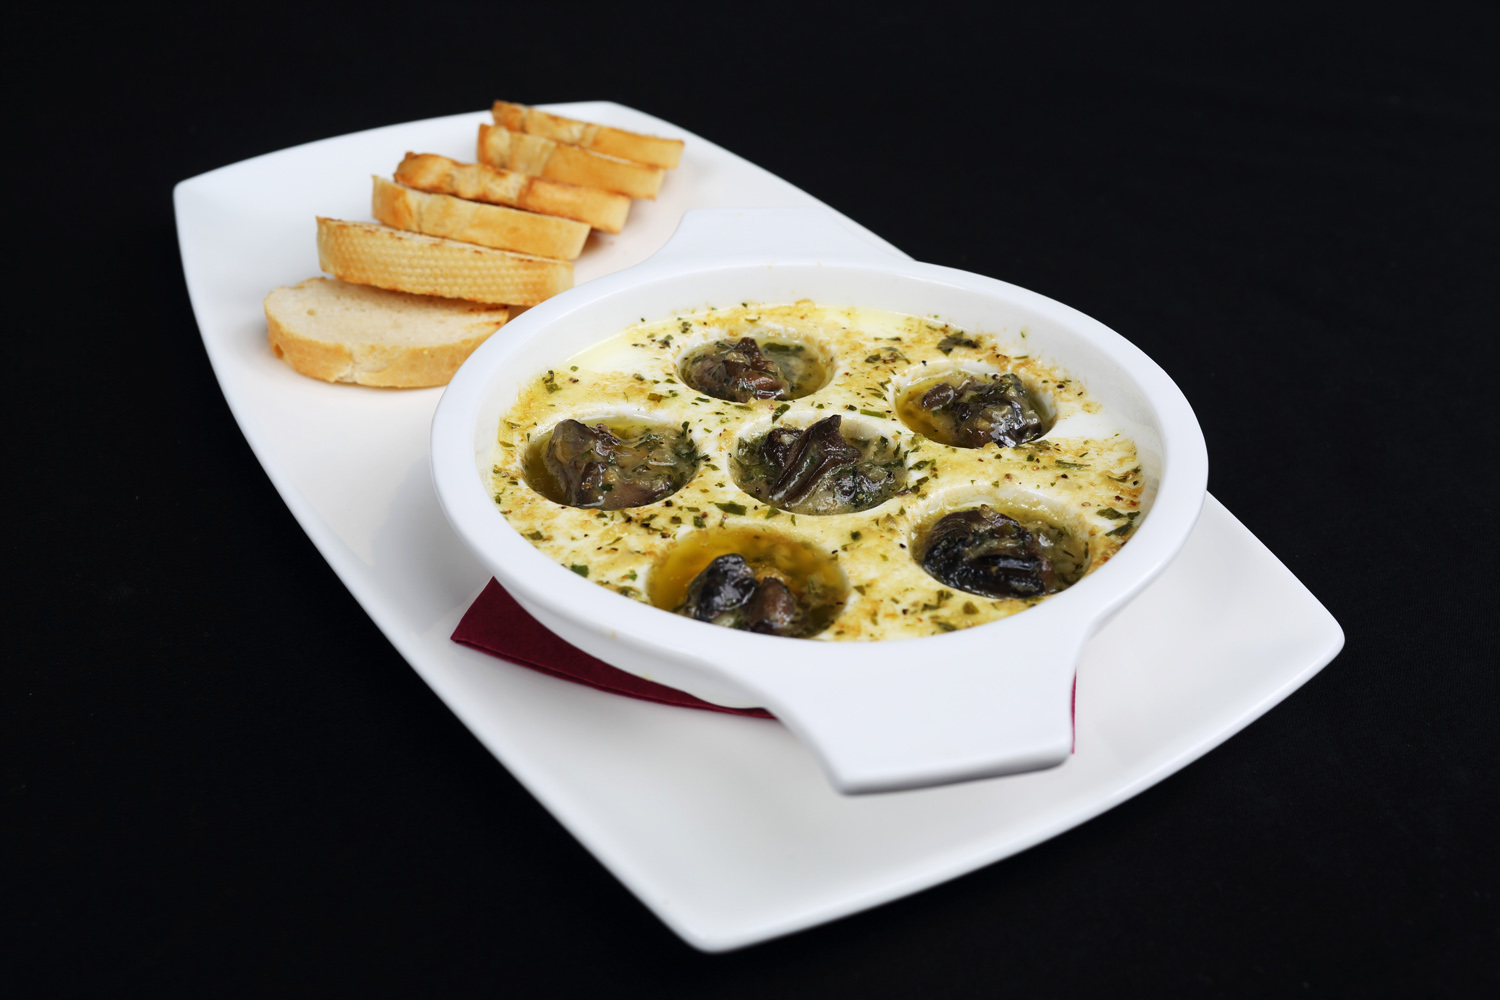 Escargots a la Bourguignonne - Angry Moon Cafe and Wine Bar, Palm Beach Gardens, FL 33410